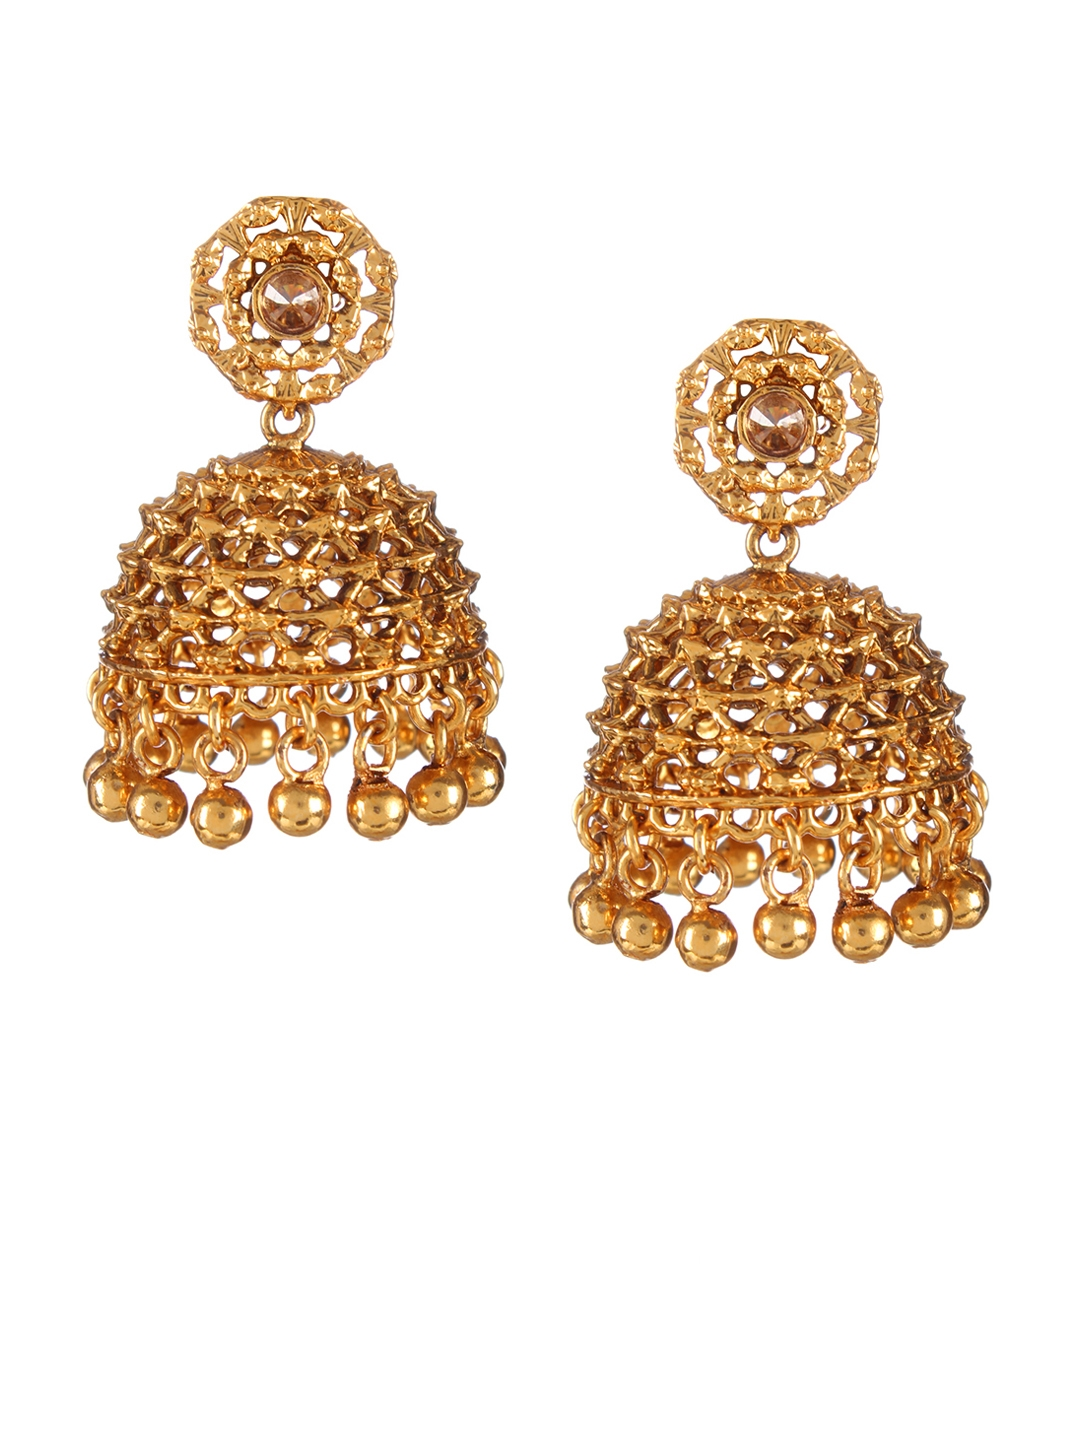 909431797e9e7 Buy Adwitiya Collection Gold Plated Dome Shaped Jhumkas - Earrings ...